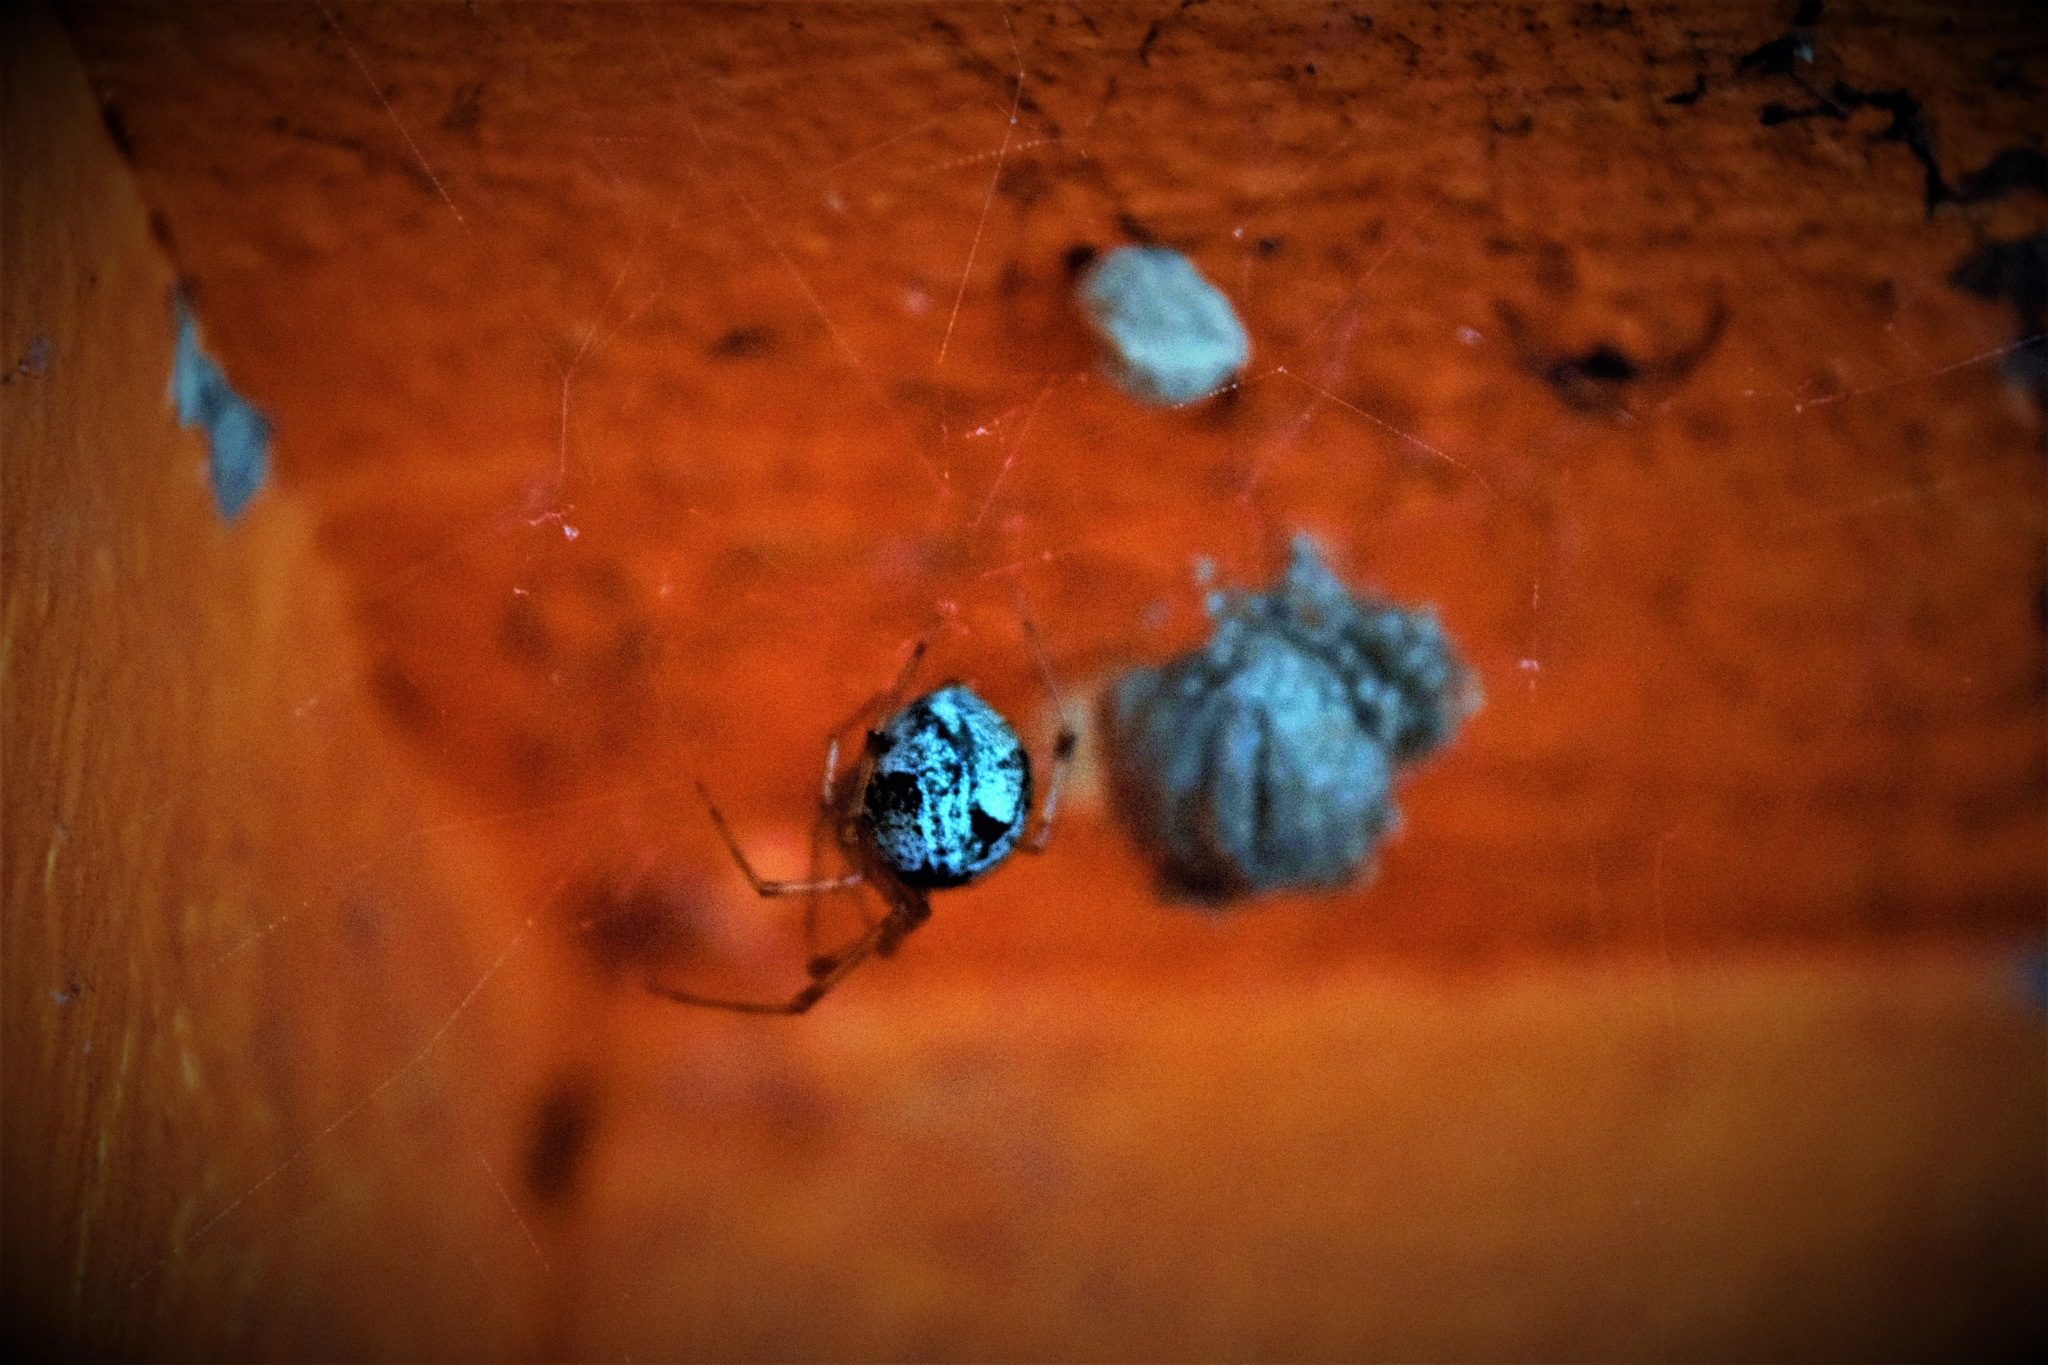 An Ornate Spider Momma With Her Brood In Waiting by RichardJTreitner